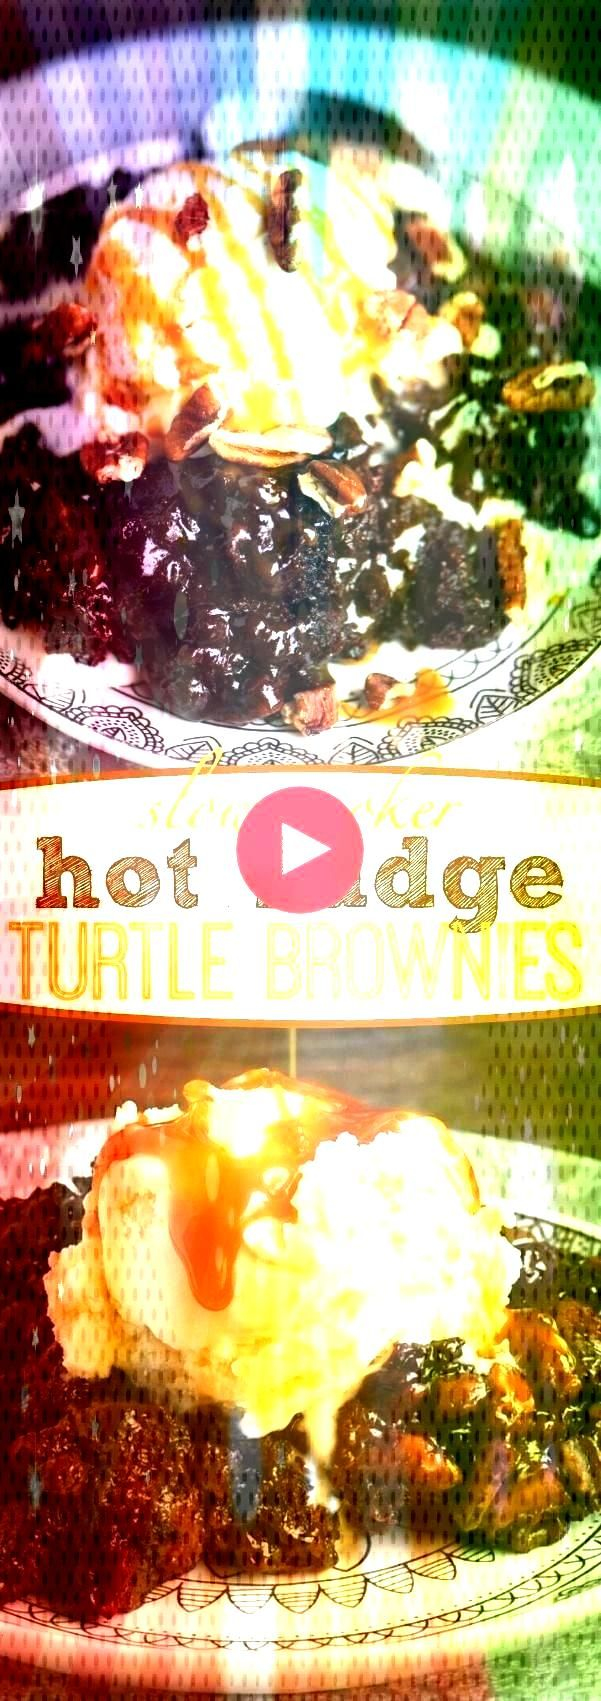 outrageously delicious, these Slow Cooker Hot Fudge Turtle Brownies are going to rock your world! H